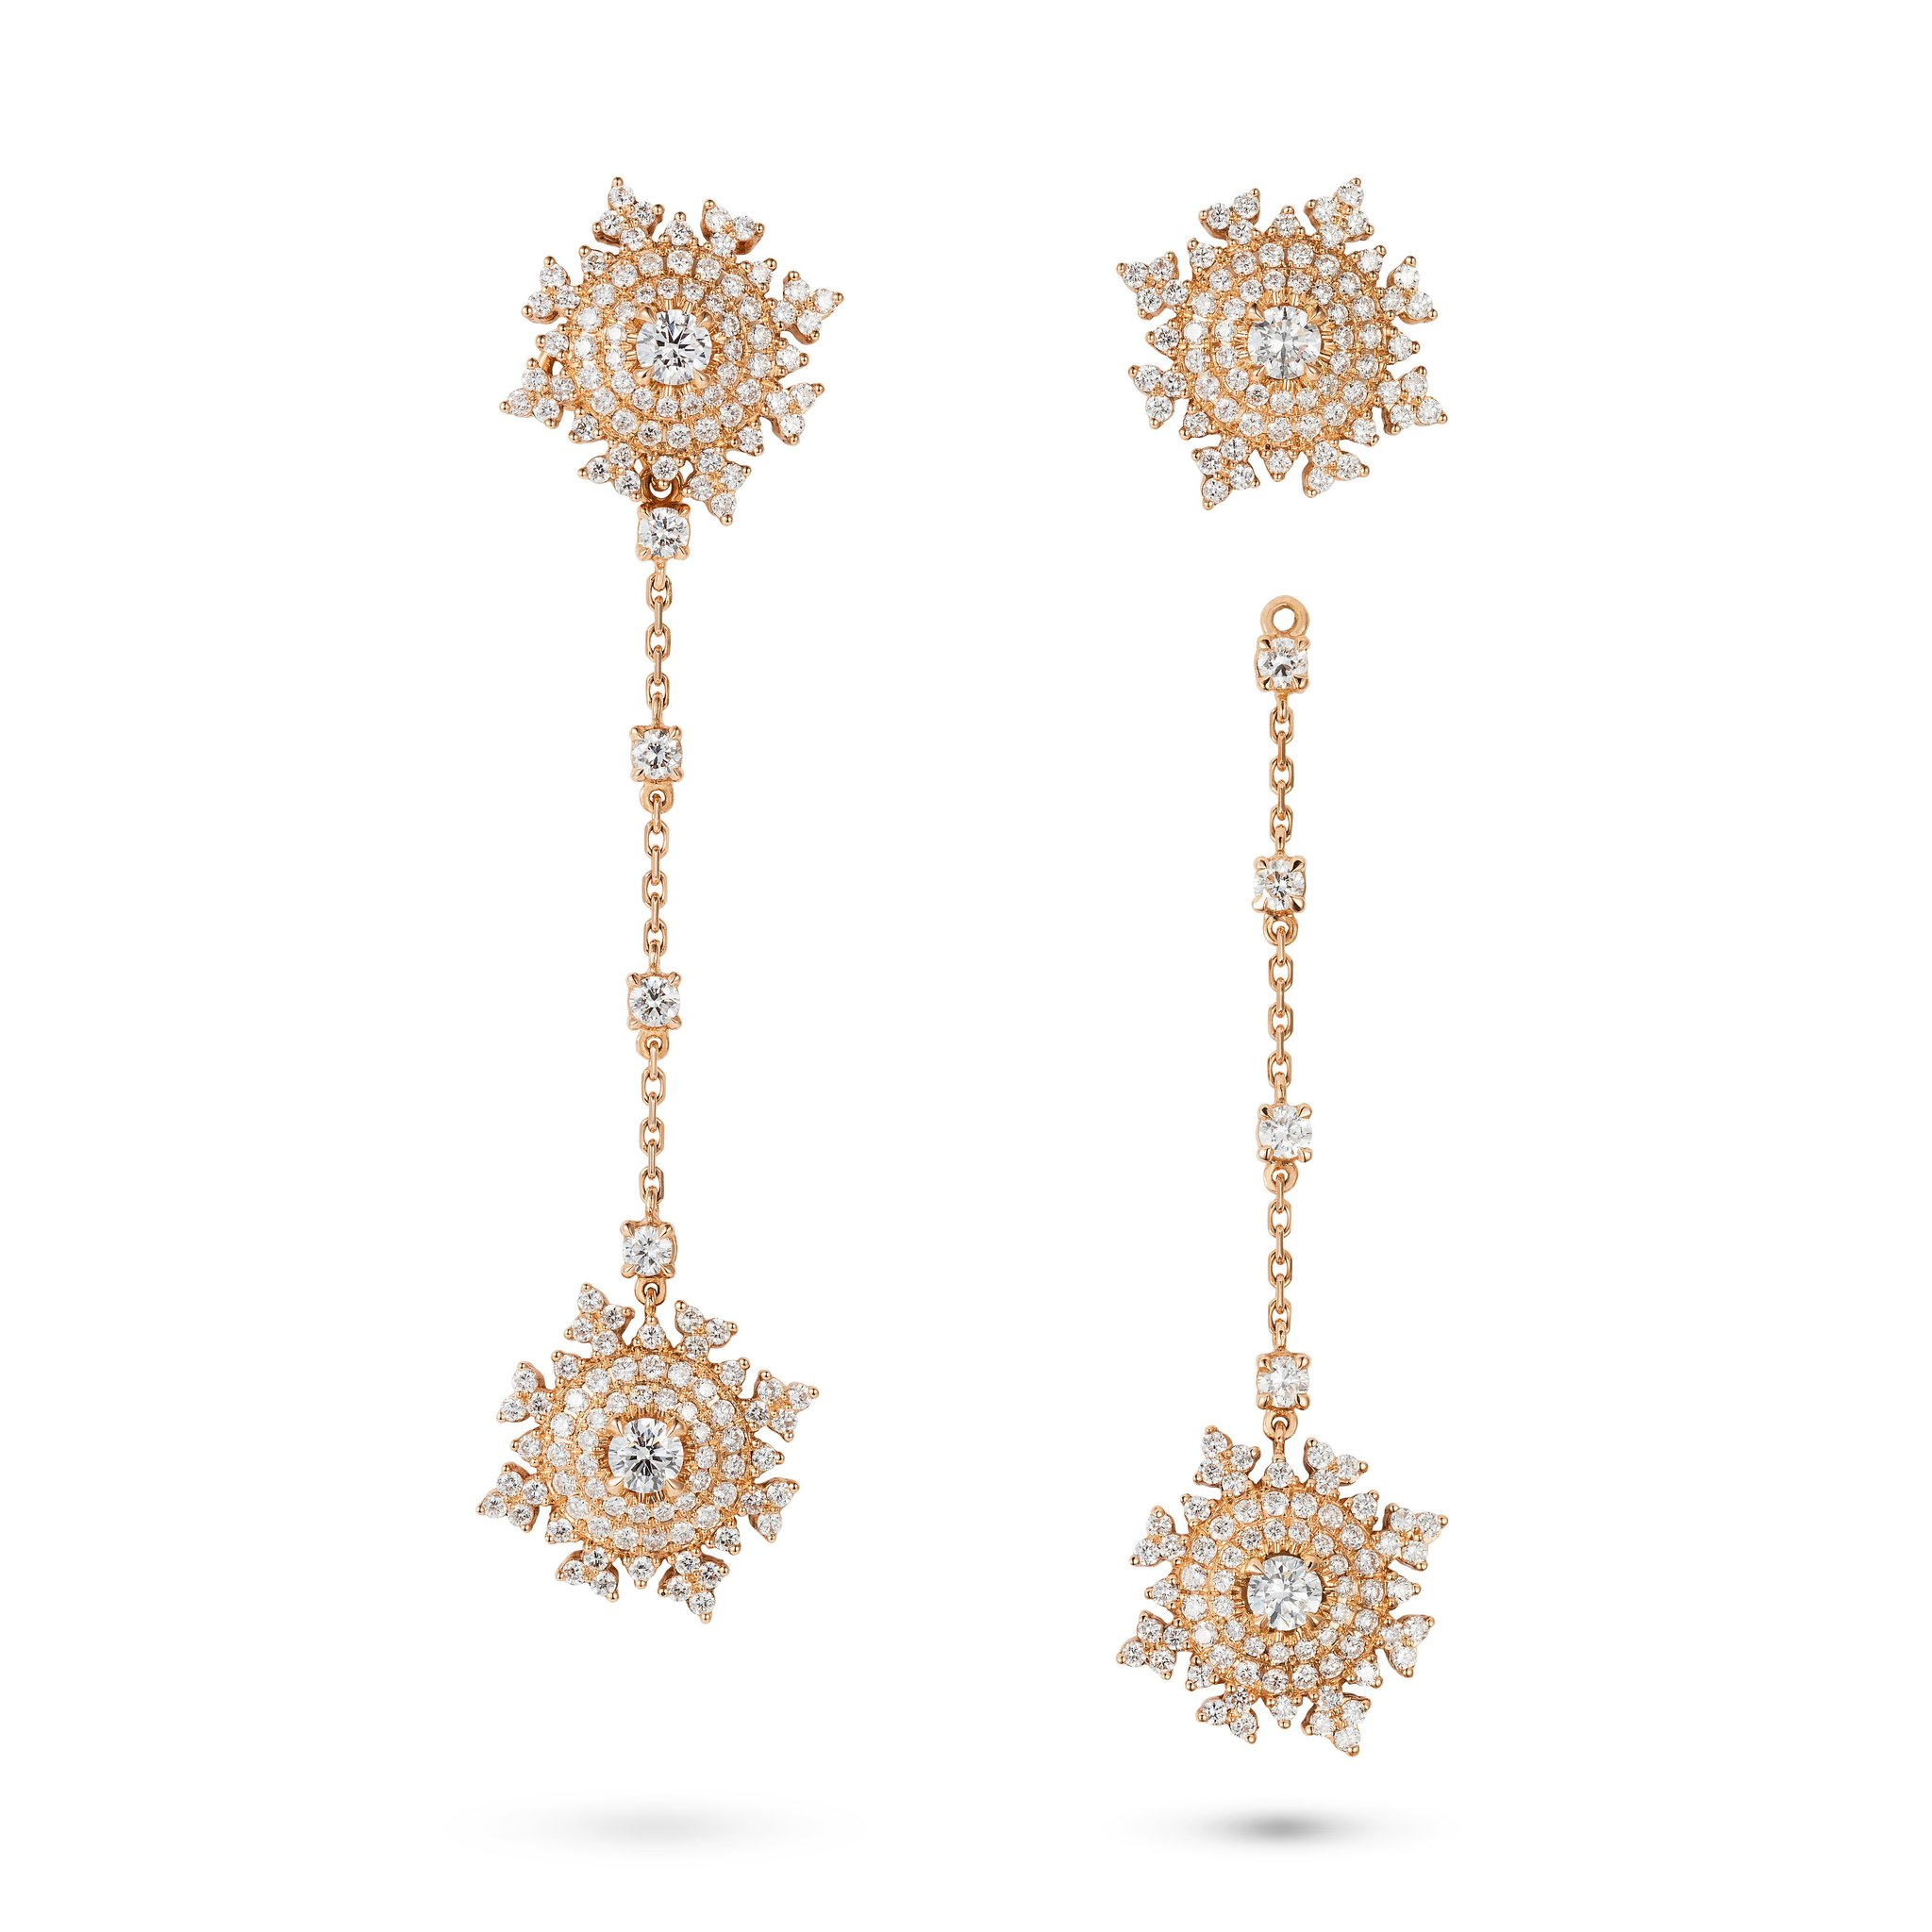 Petite Tsarina Rose Pendant Earrings by Nadine Aysoy on curated-crowd.com